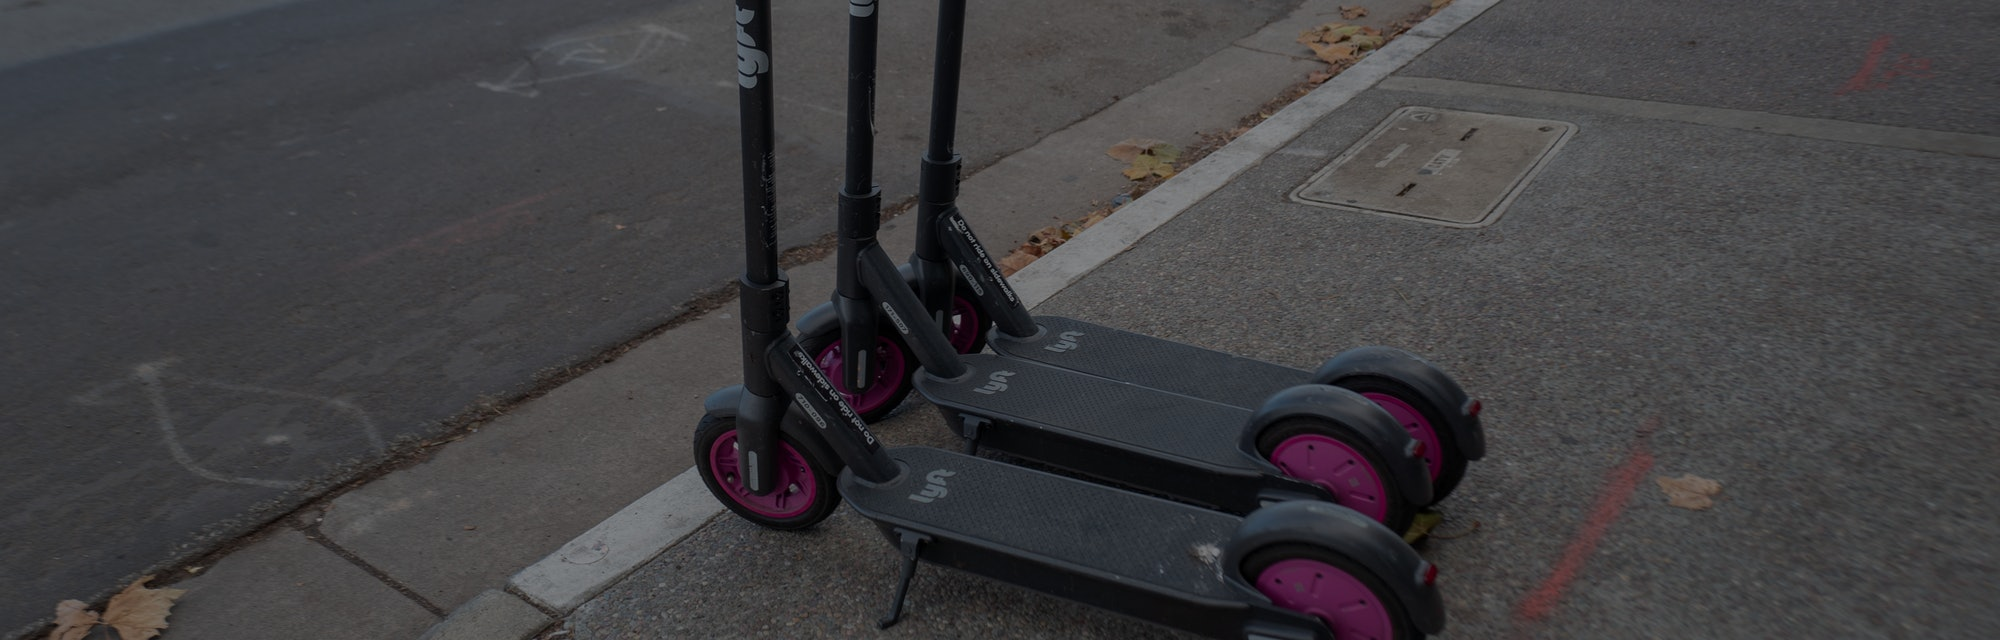 Two Lyft electric scooters parked on a sidewalk.